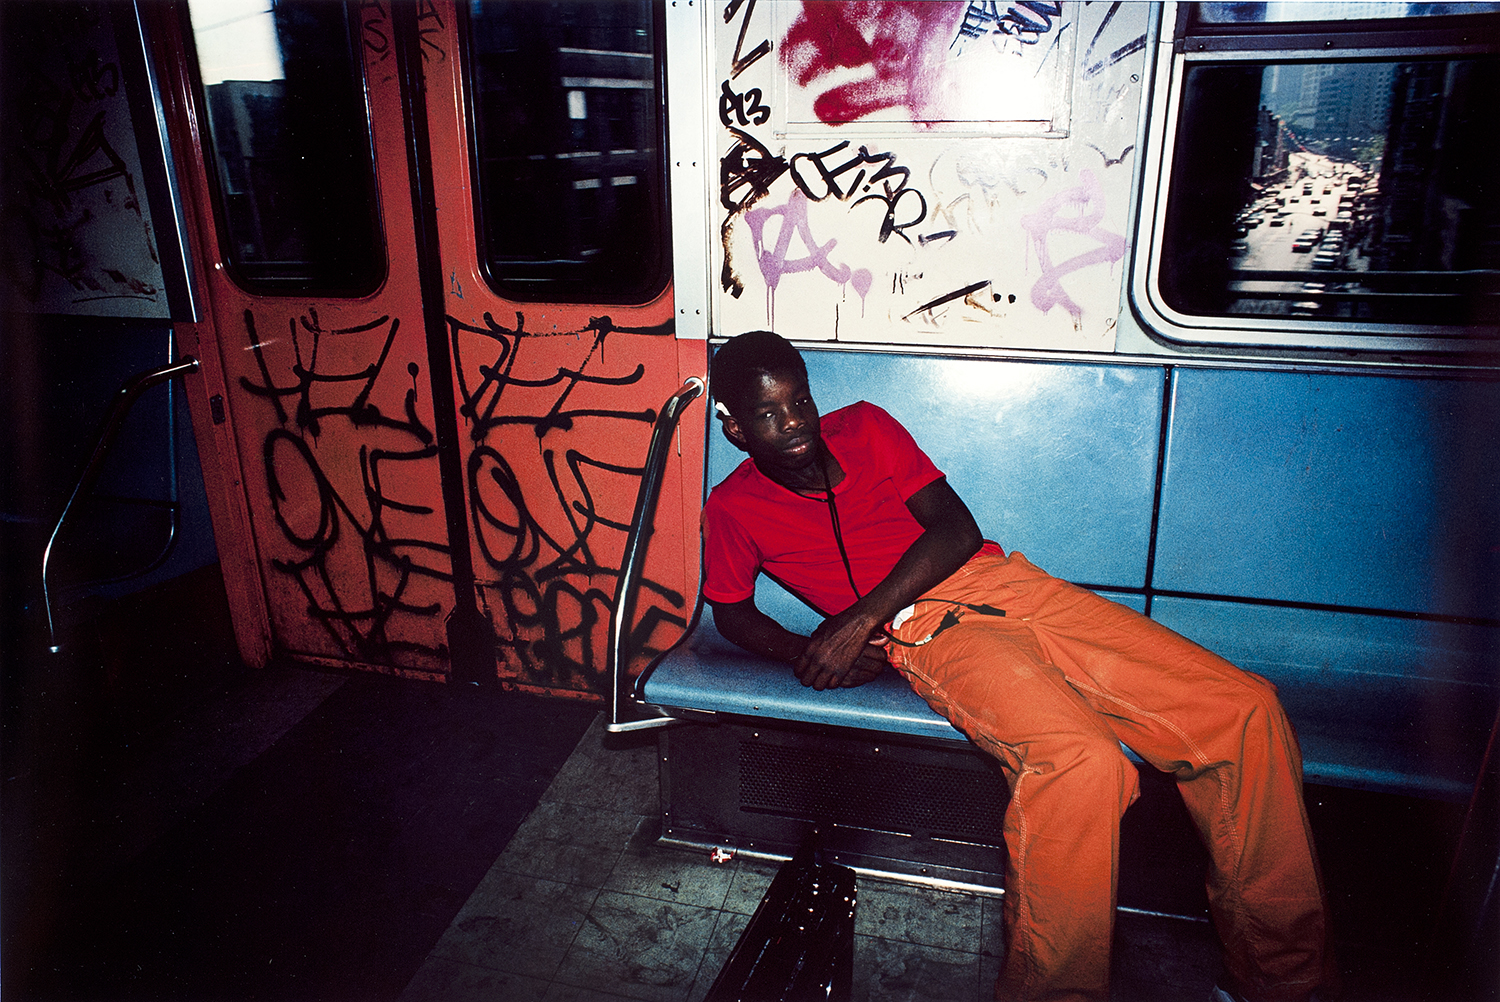 Bruce Davidson  Untitled , from the series  Subway , New York, C. 1980s  20 X 24 Dye transfer print Rose Shoshana Collection